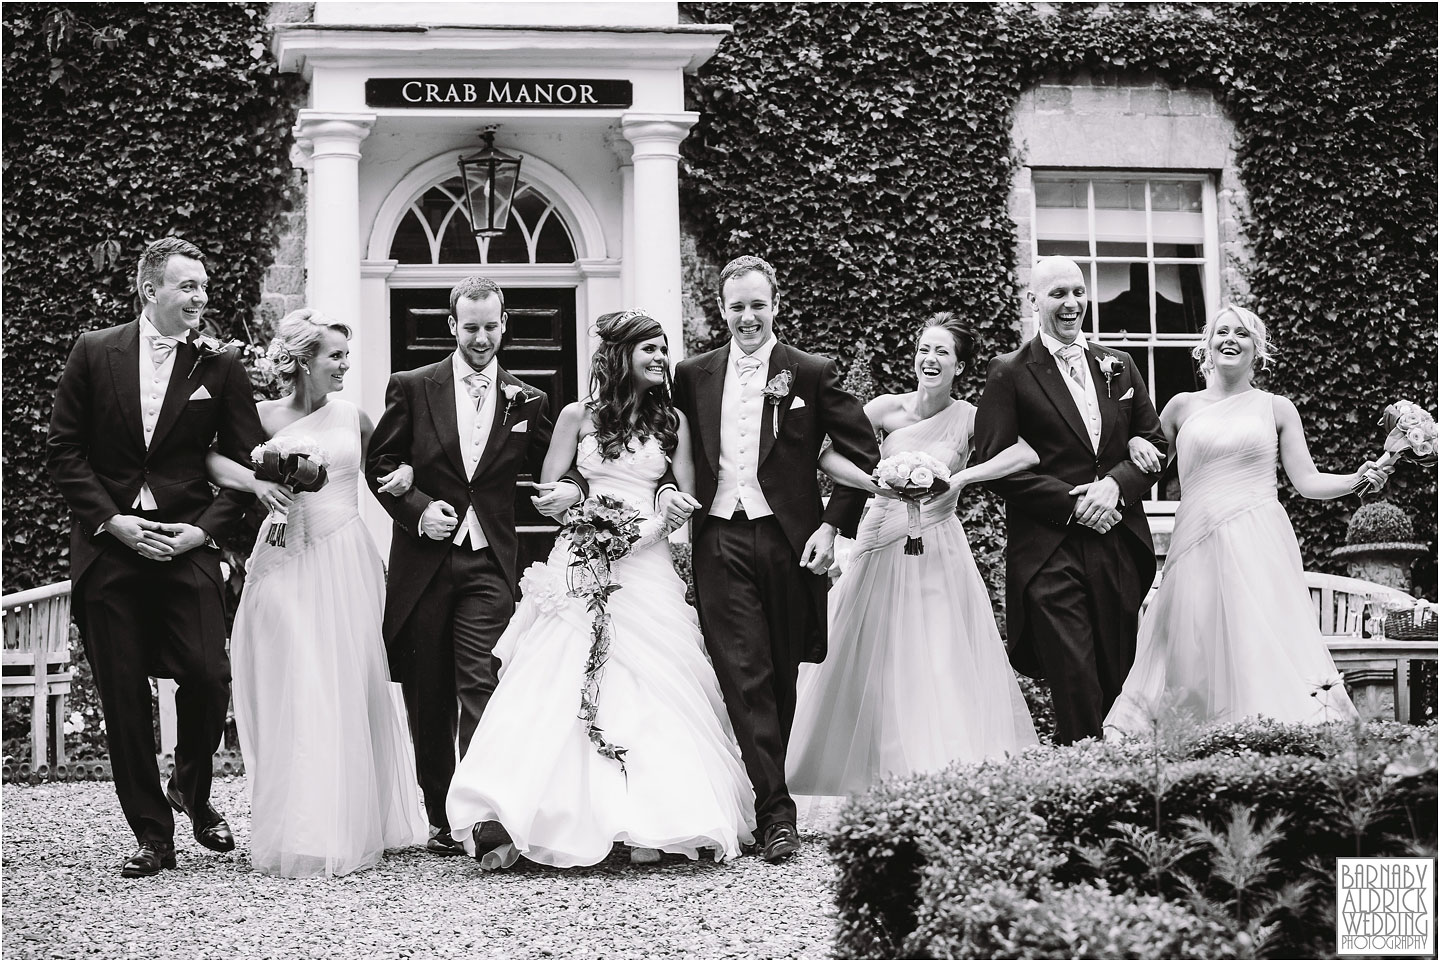 A fun and funky wedding party groupshot at the Crab and Lobster in Yorkshire